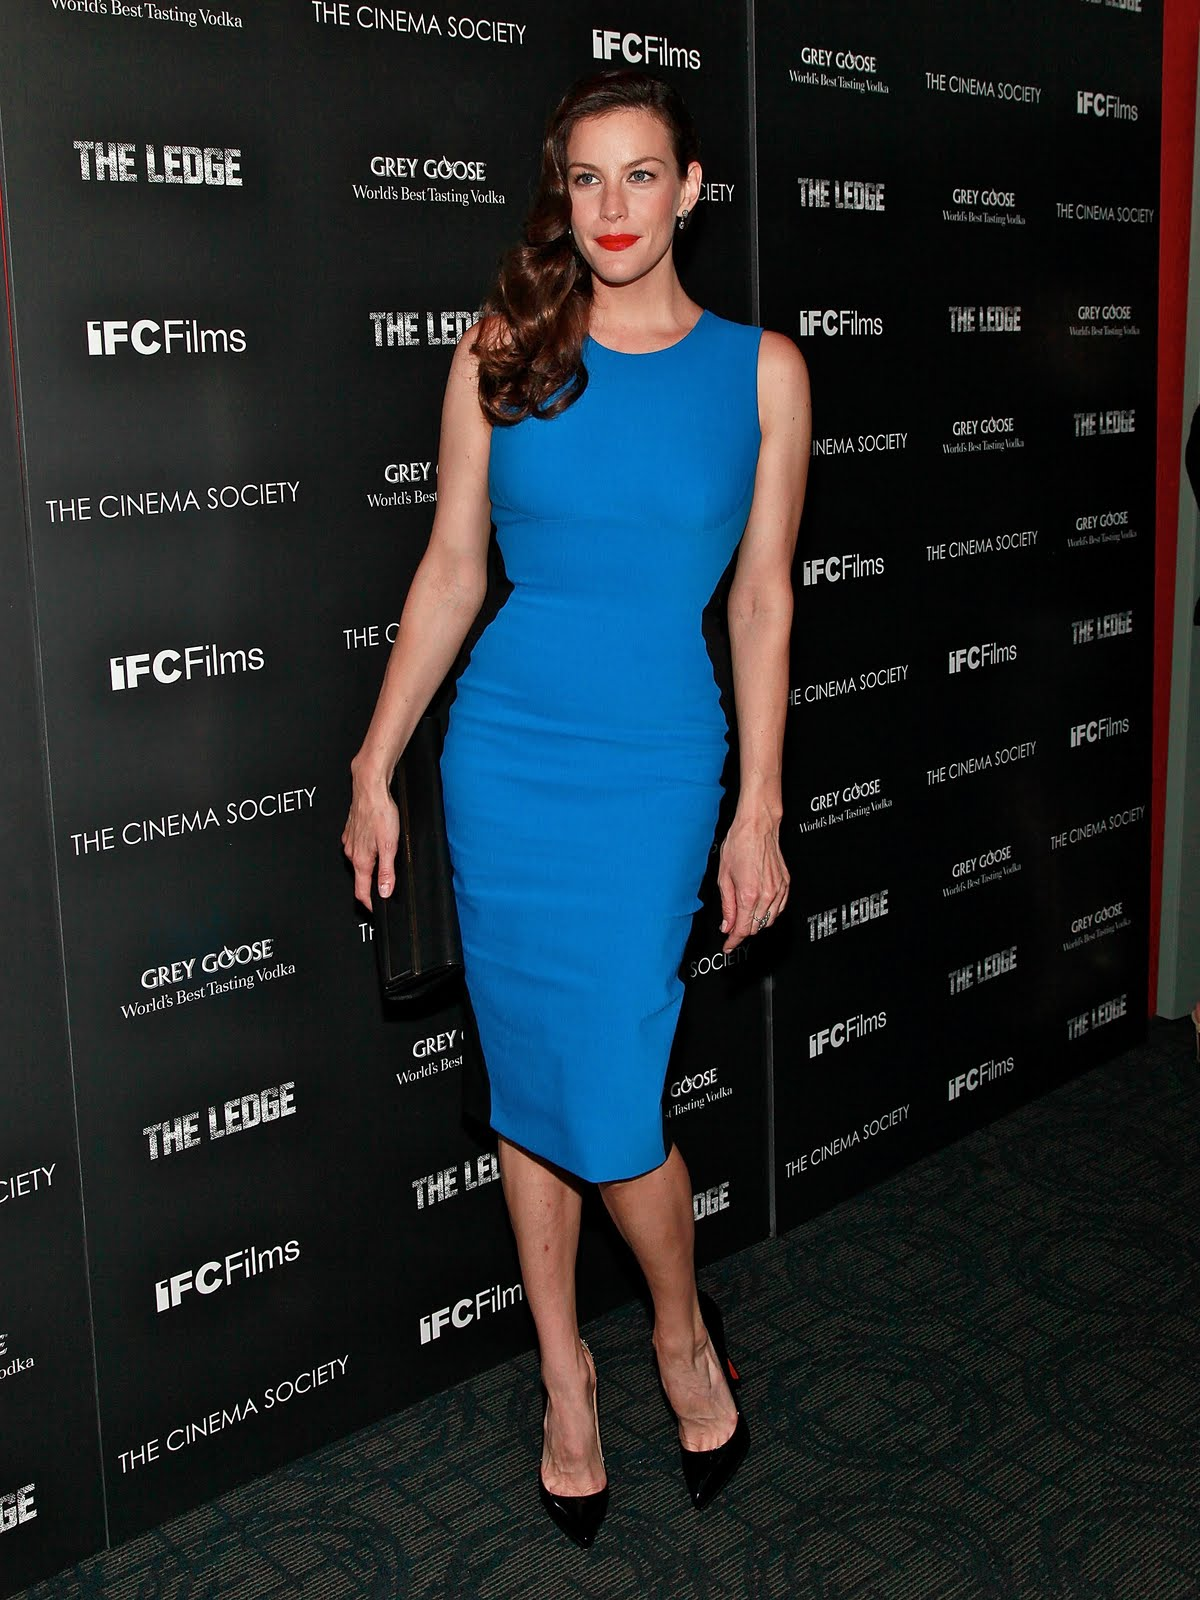 http://4.bp.blogspot.com/-KY4KV9hl6rk/TkLX4u_pMiI/AAAAAAAAJg0/XW3AyUO_6IY/s1600/Liv_Tyler_attends_a_screening_of_The_Ledge_in_New_York_City_June_21_2011_010_123_500lo.jpg